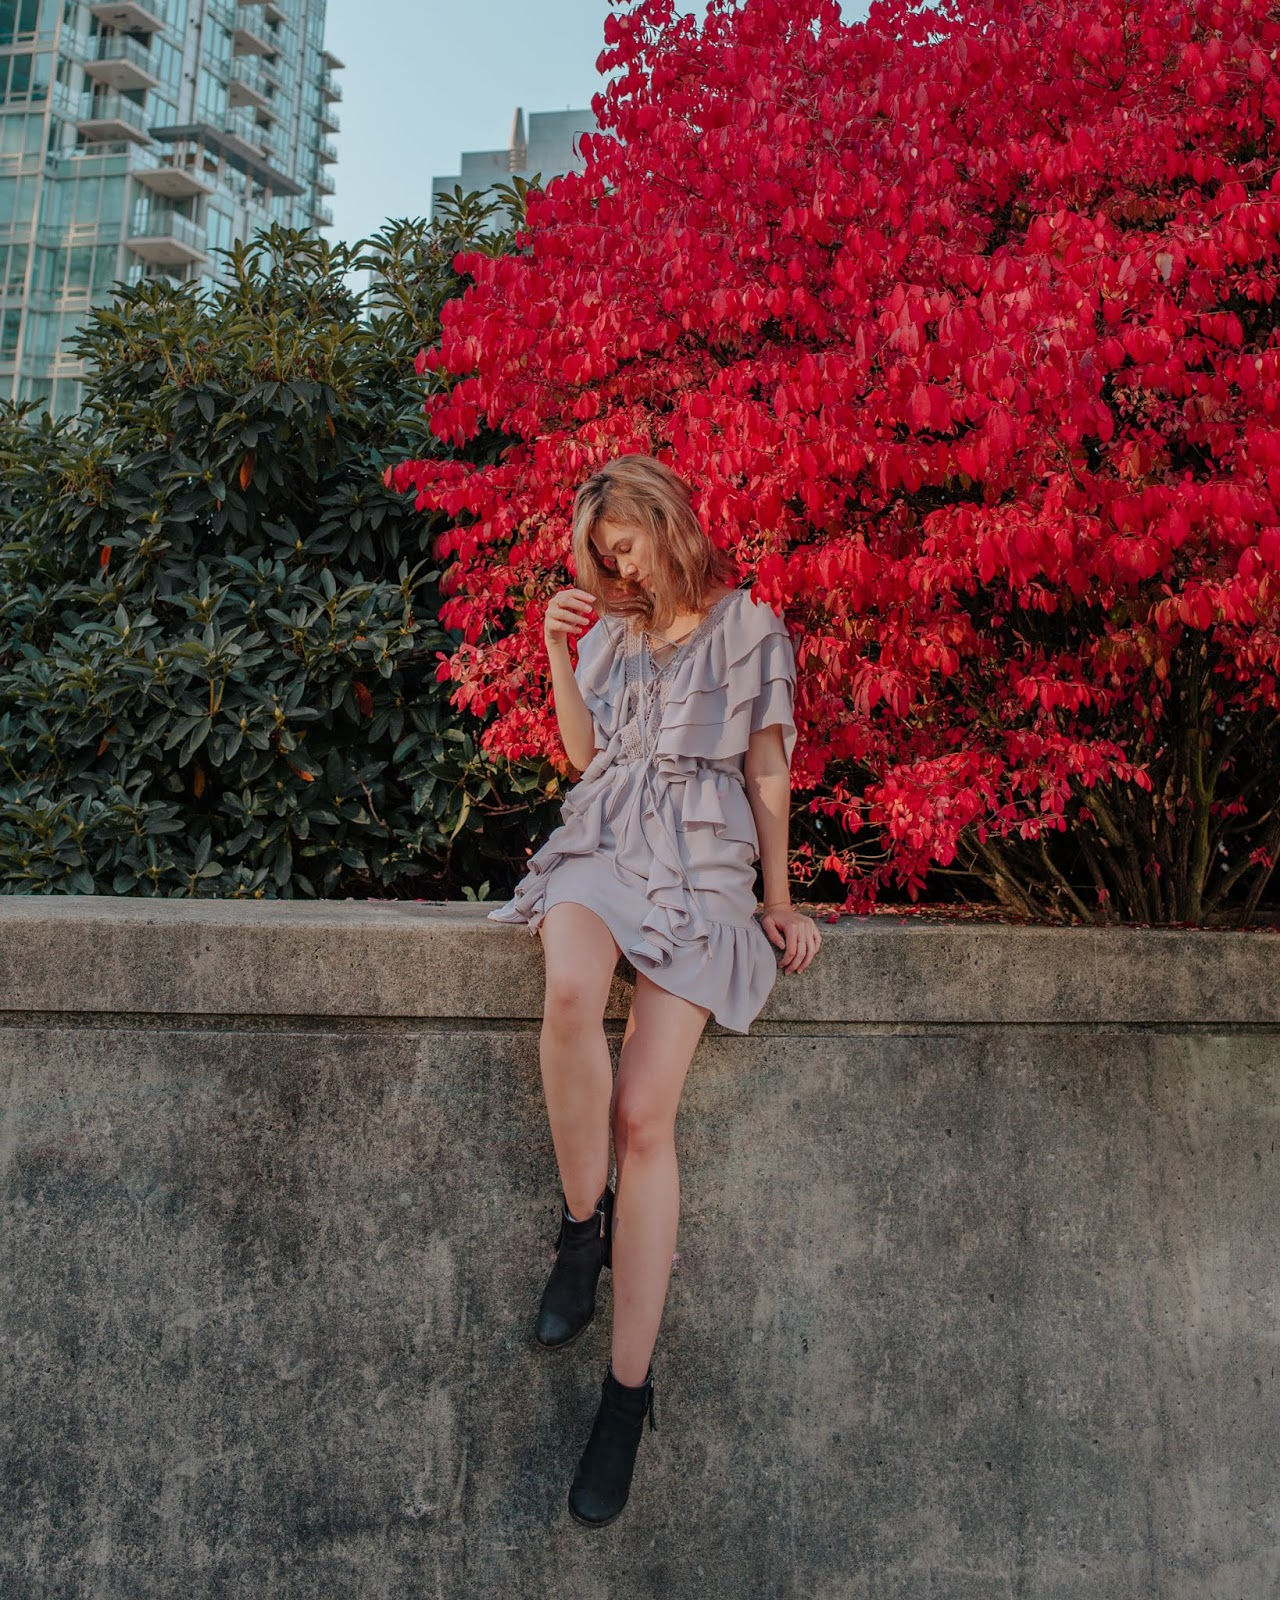 Camel tones, vancouver blogger, fall trends, fall 2018 trends, camel coat, cozy outfit for winter, fall outfit, fall style, canadian style, canadian fashion blogger, fall dresses, ministry of style,